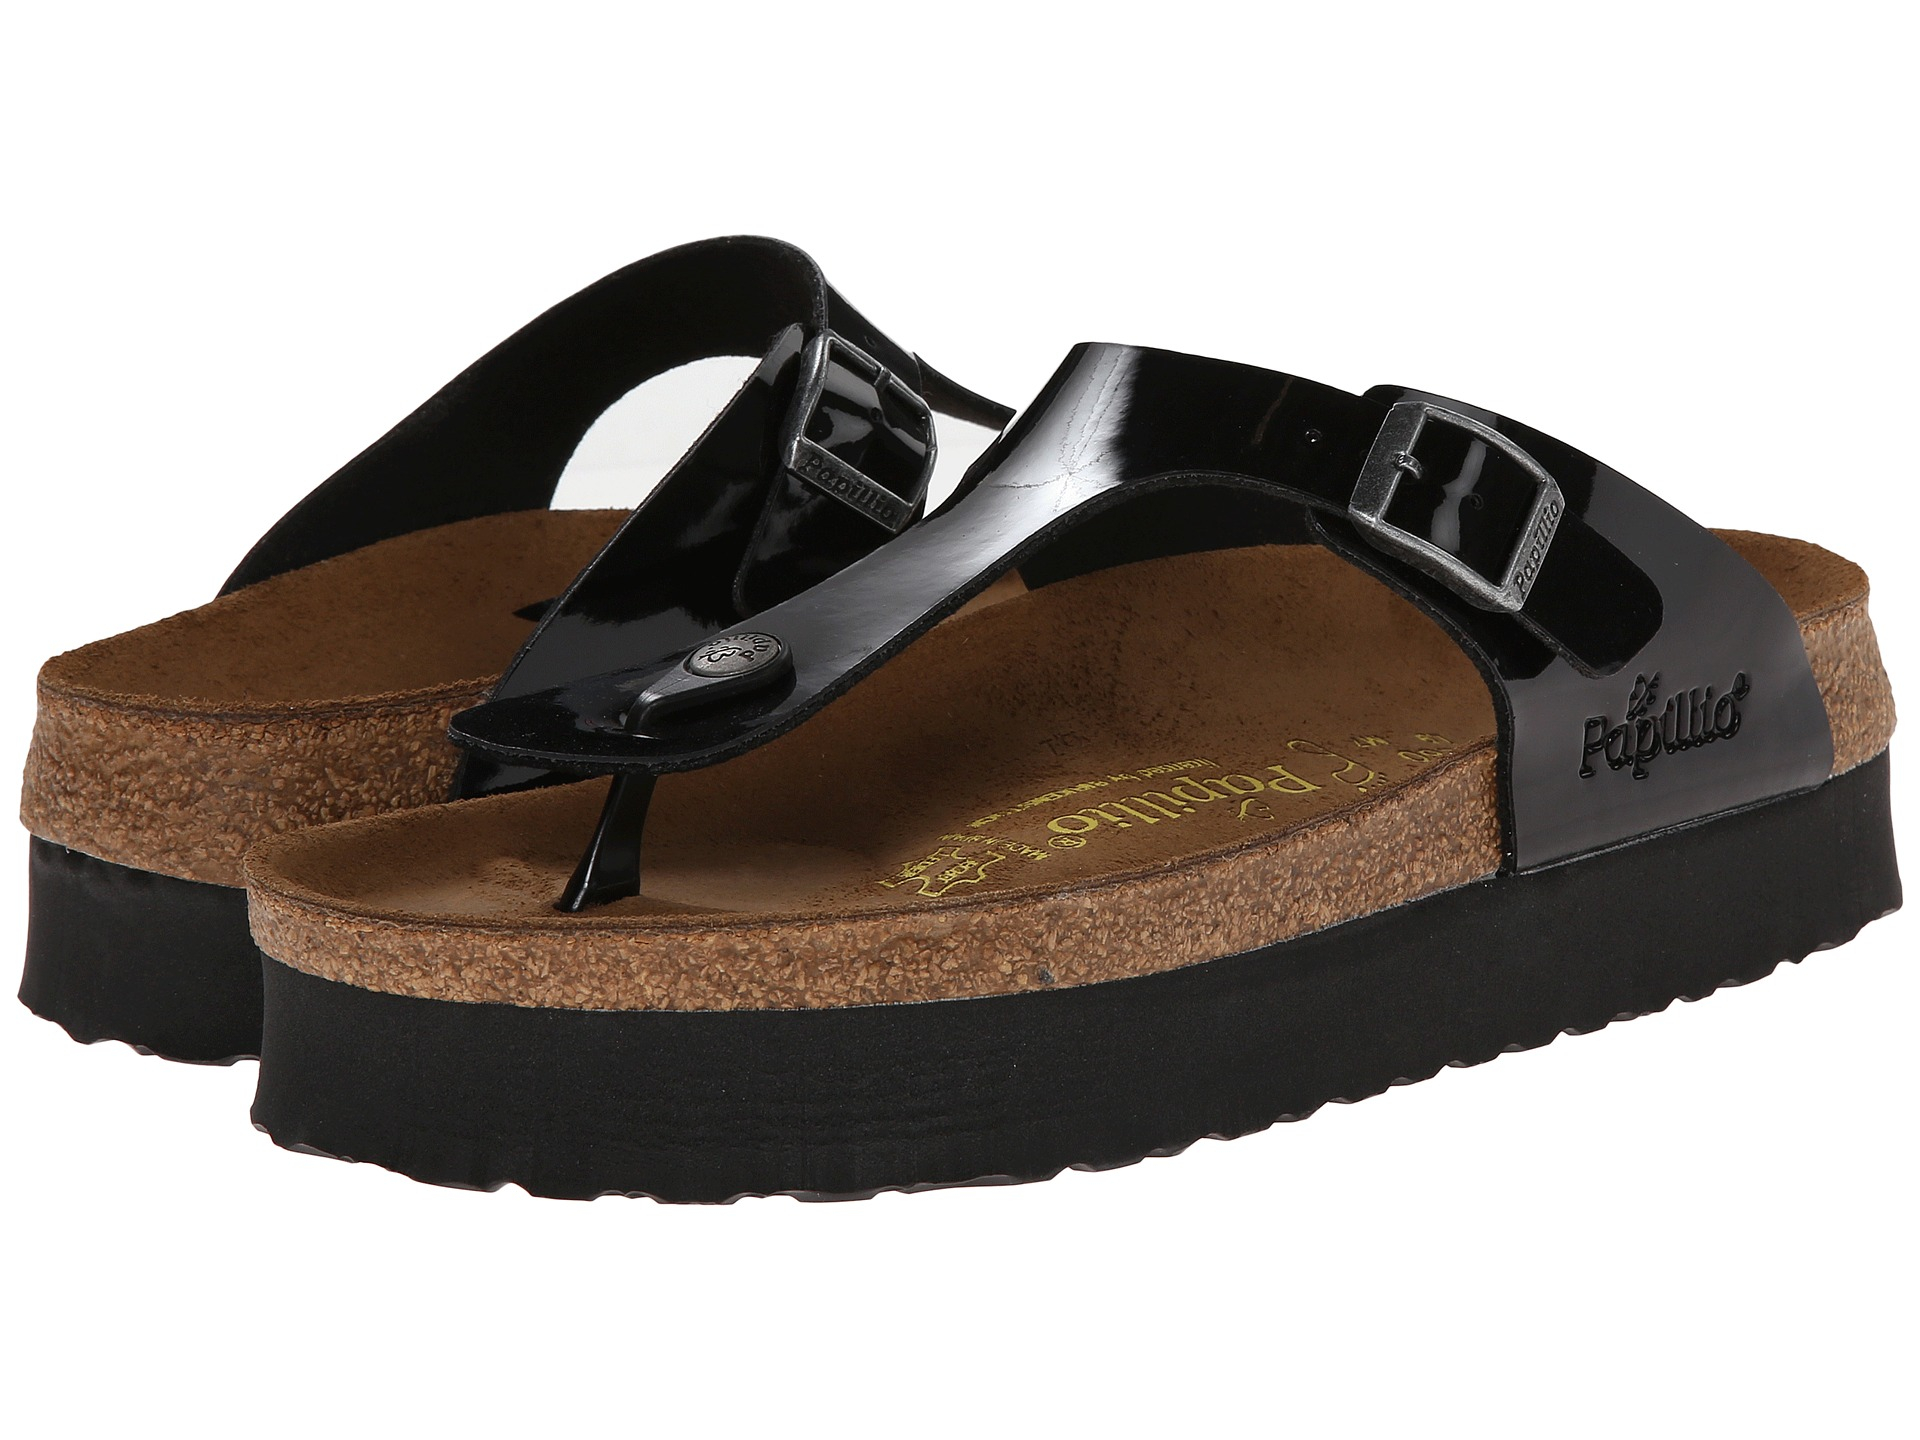 b1a789c9ba Gallery. Previously sold at: Zappos · Women's Birkenstock Gizeh